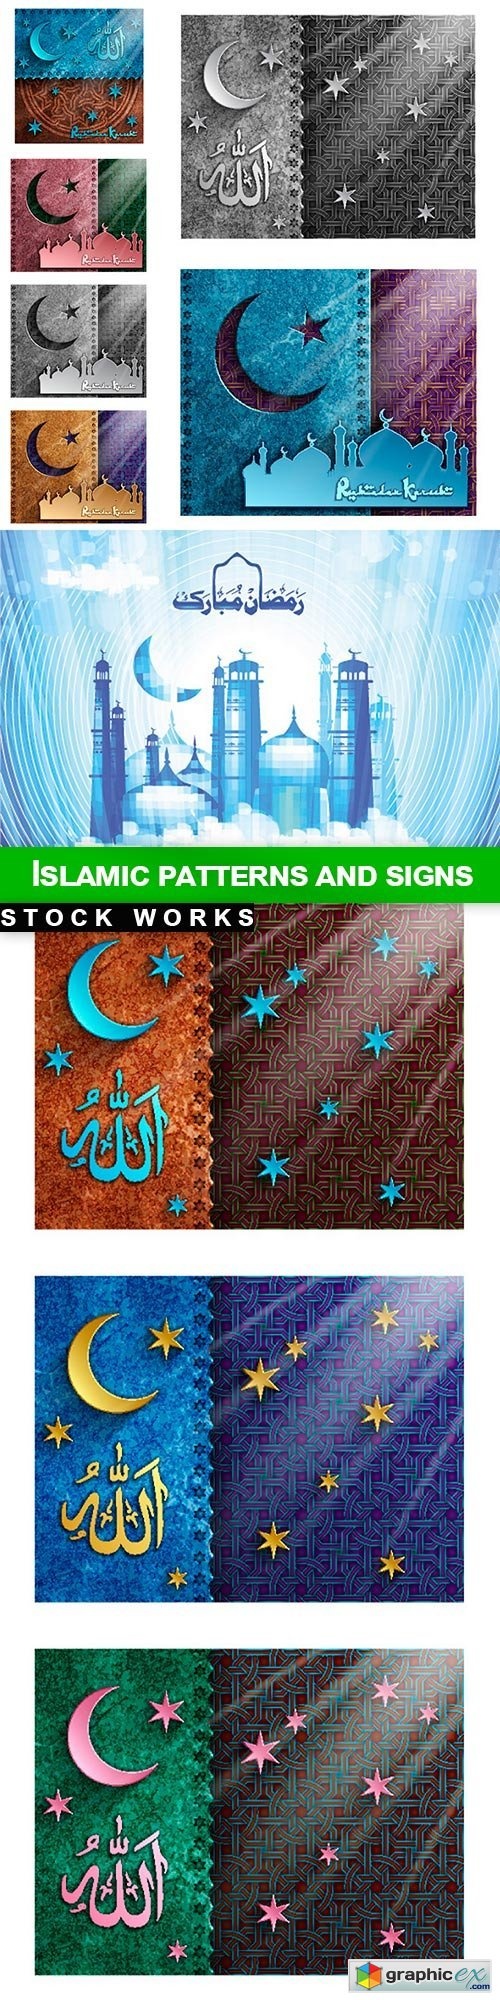 Islamic patterns and signs - 10 EPS